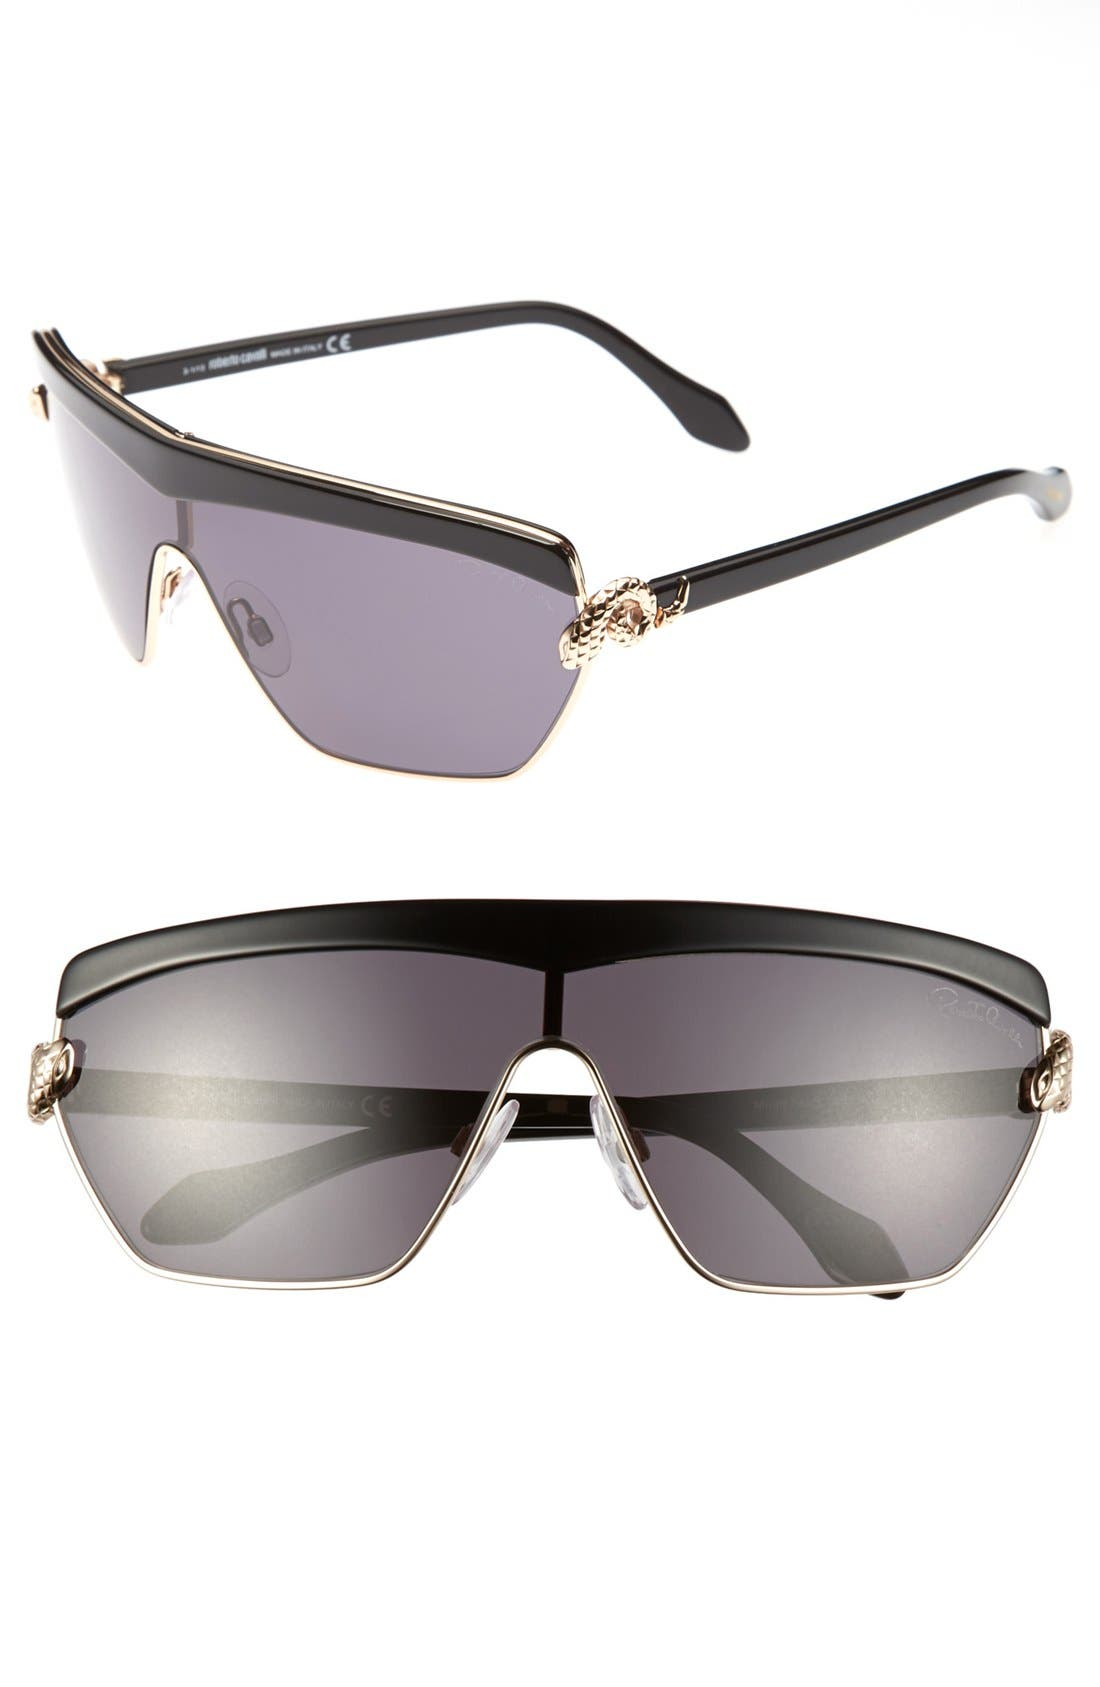 Main Image - Roberto Cavalli 'Mirihi' 139mm Shield Sunglasses